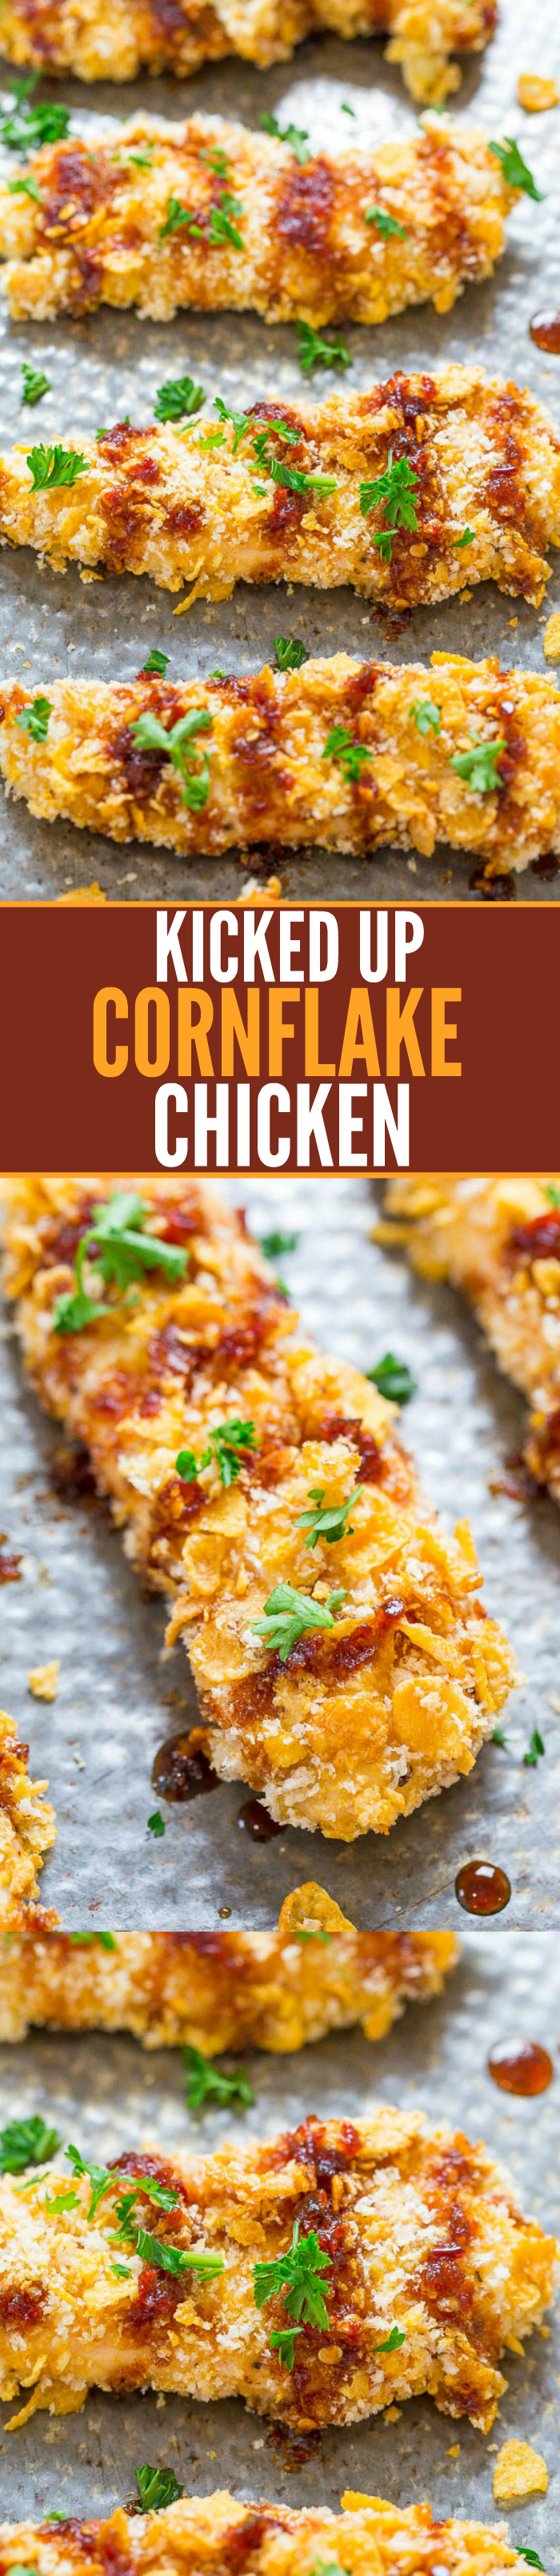 Two picture collage of Kicked Up Cornflake Chicken with graphic title